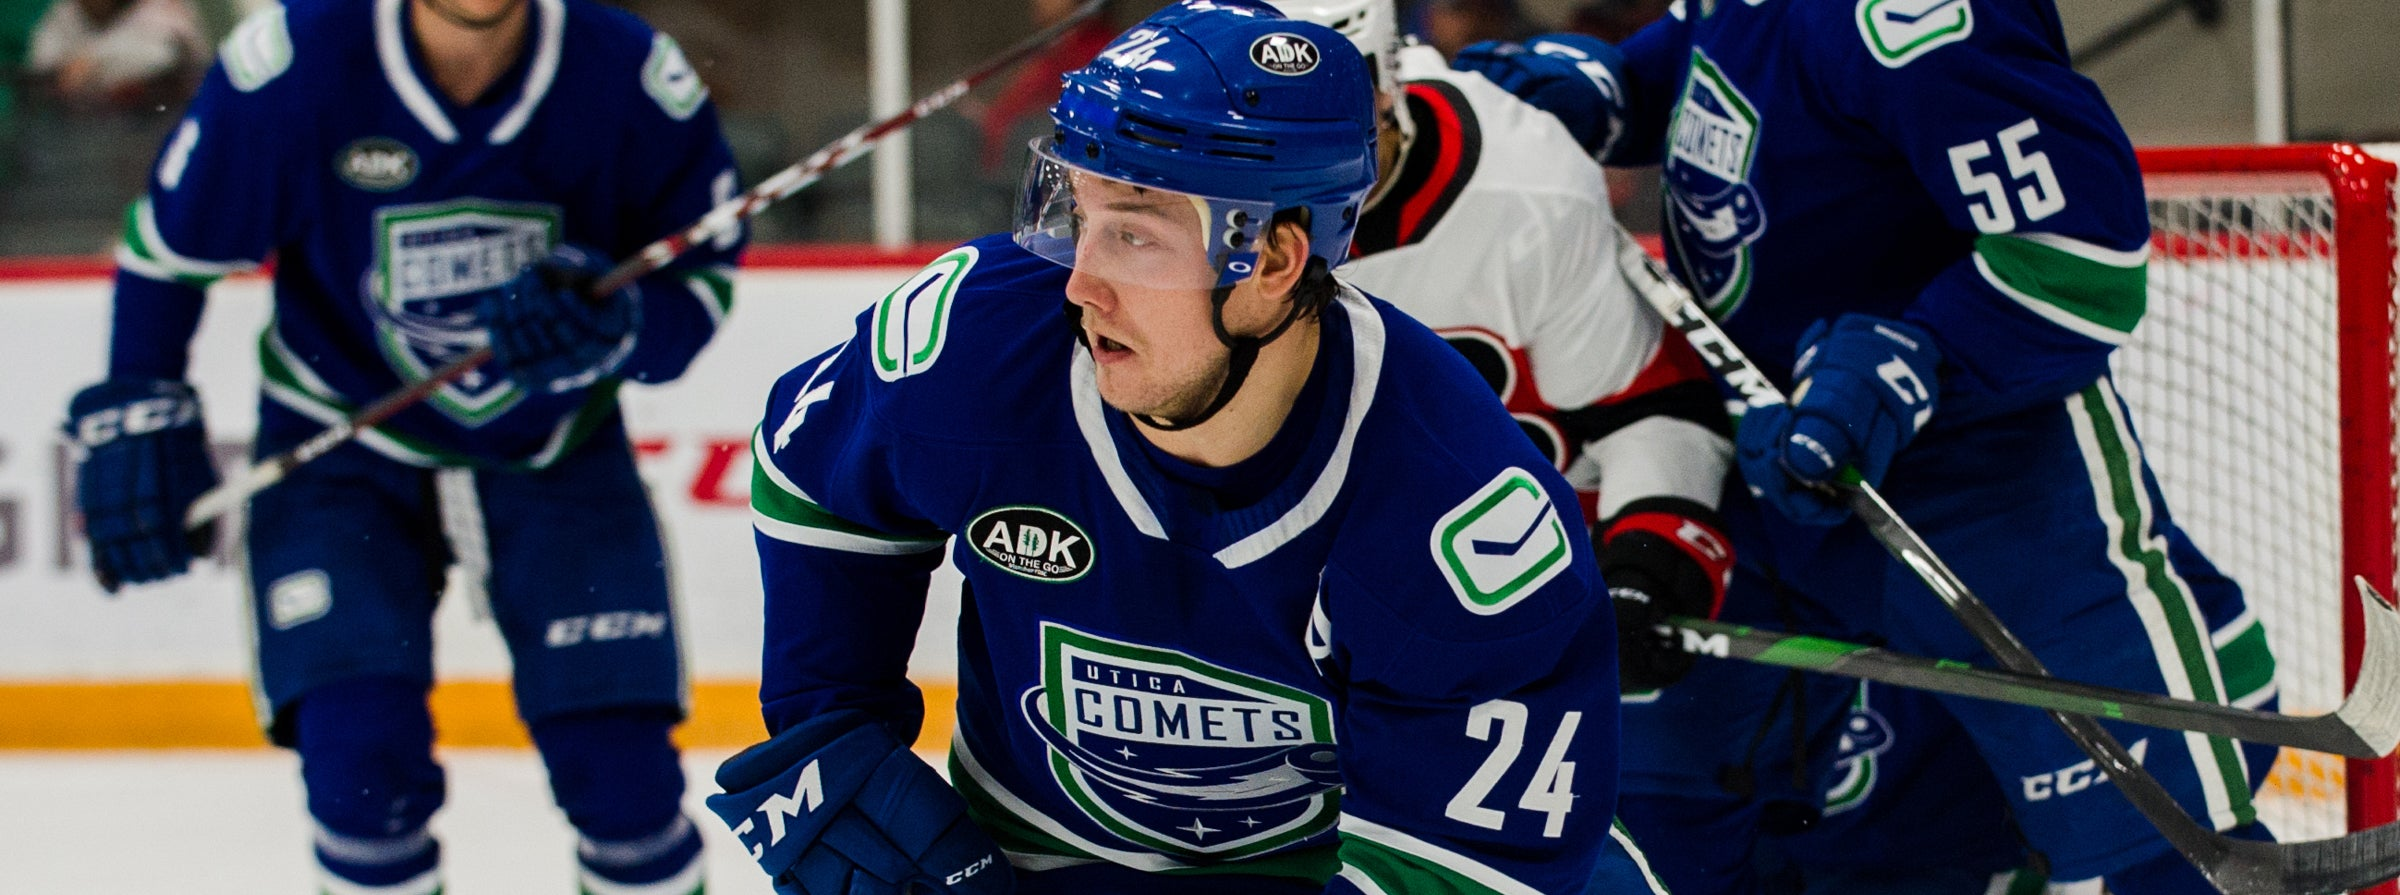 BOUCHER BREAKS RECORD AS COMETS TOPPLE SENATORS